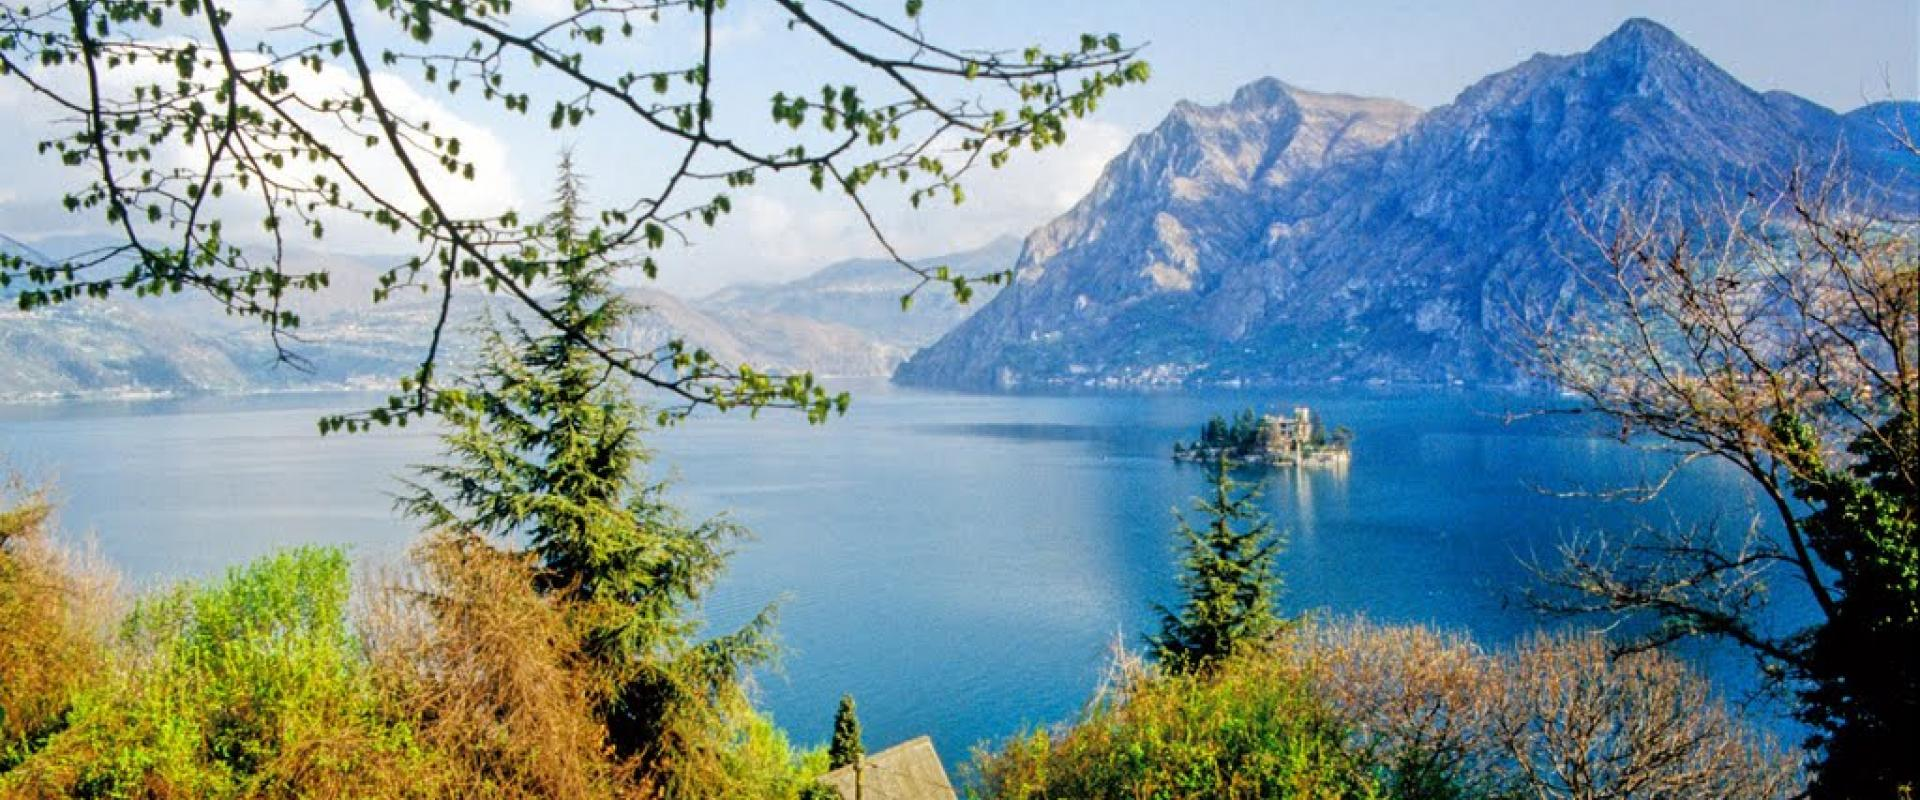 hiking experience along Iseo Lake